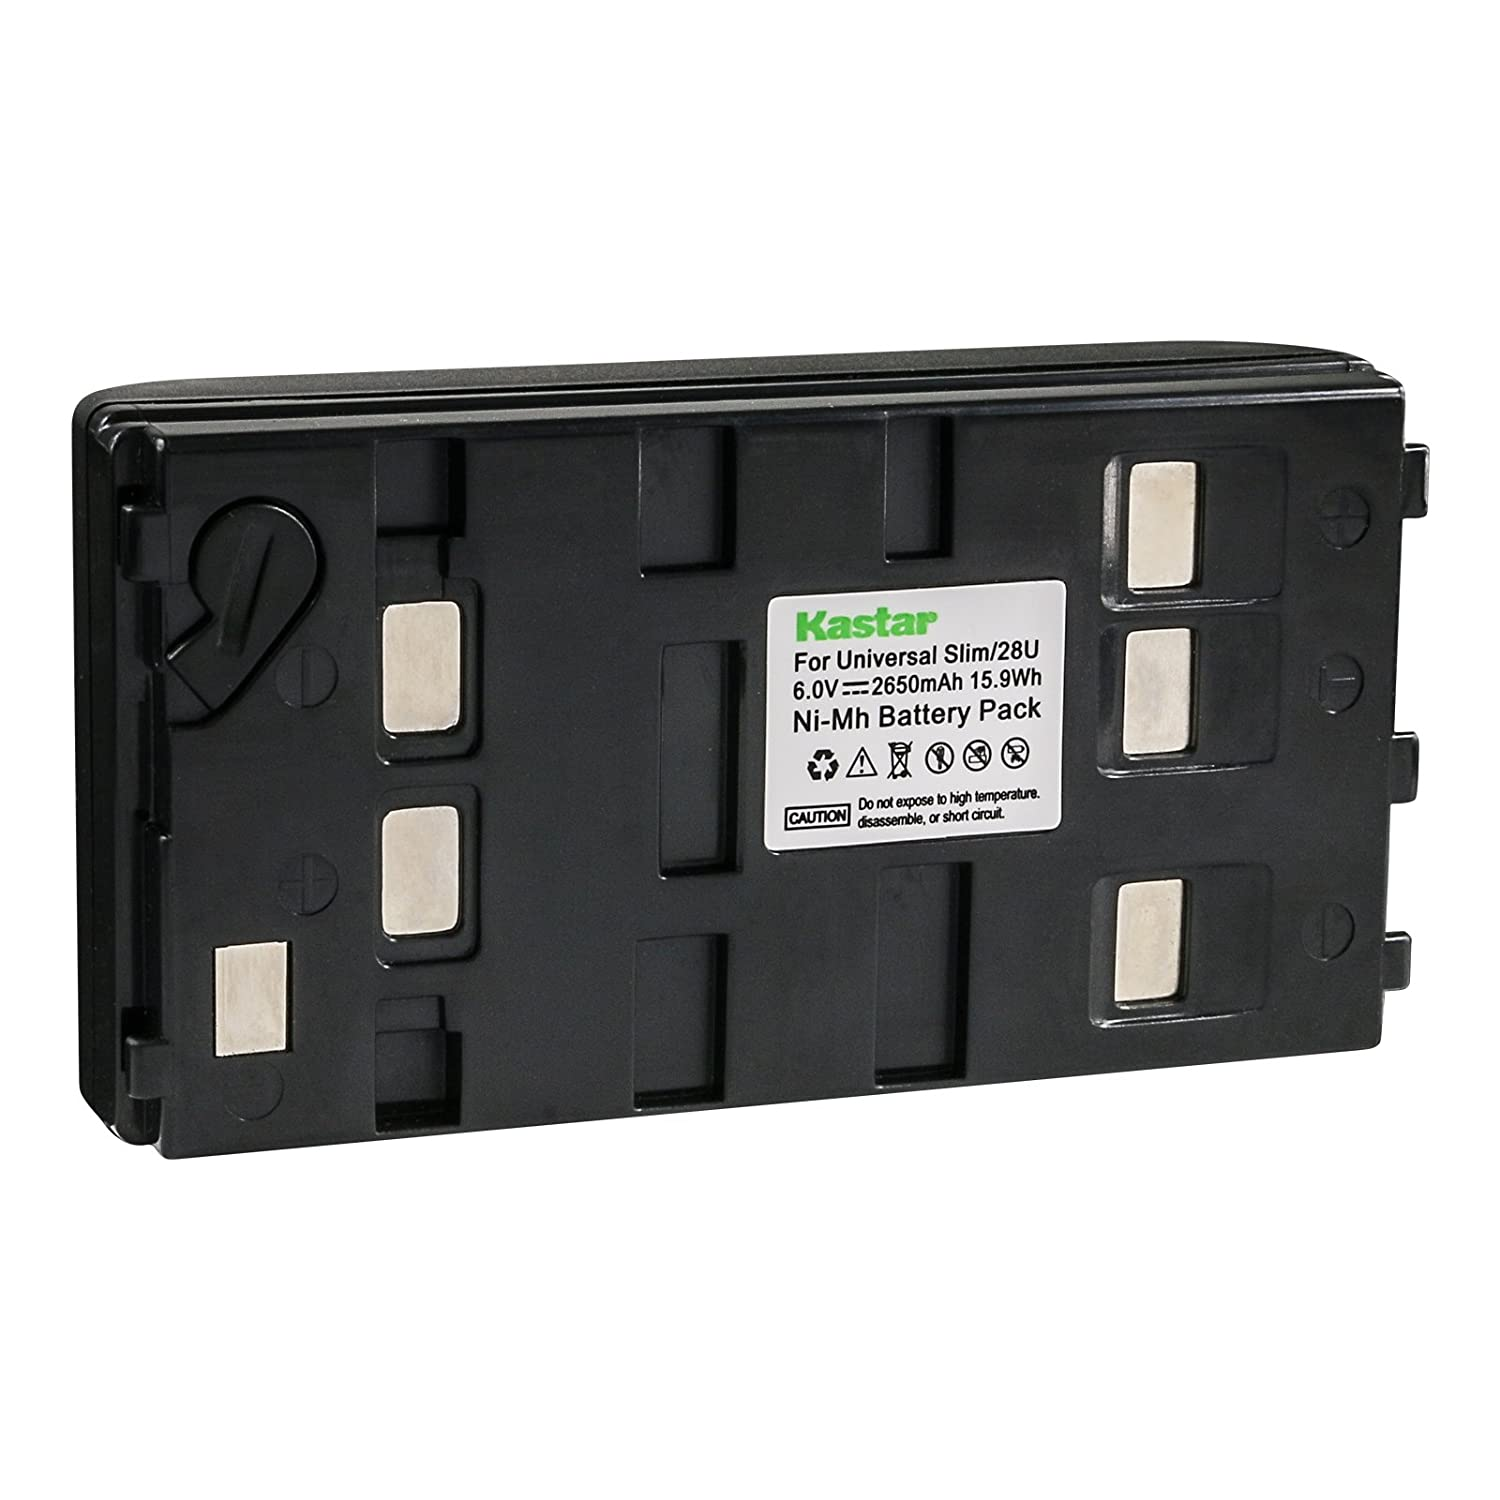 Amazon.com : Kastar 2650mA, 6V Replacement NiMH Battery for JVC BN-V11U  BN-V20U BN-V25U, Panasonic HHR-V20A HHR-V40A VW-VBS1 VW-VBS2 and Sony  NP-55H NP-77H ...